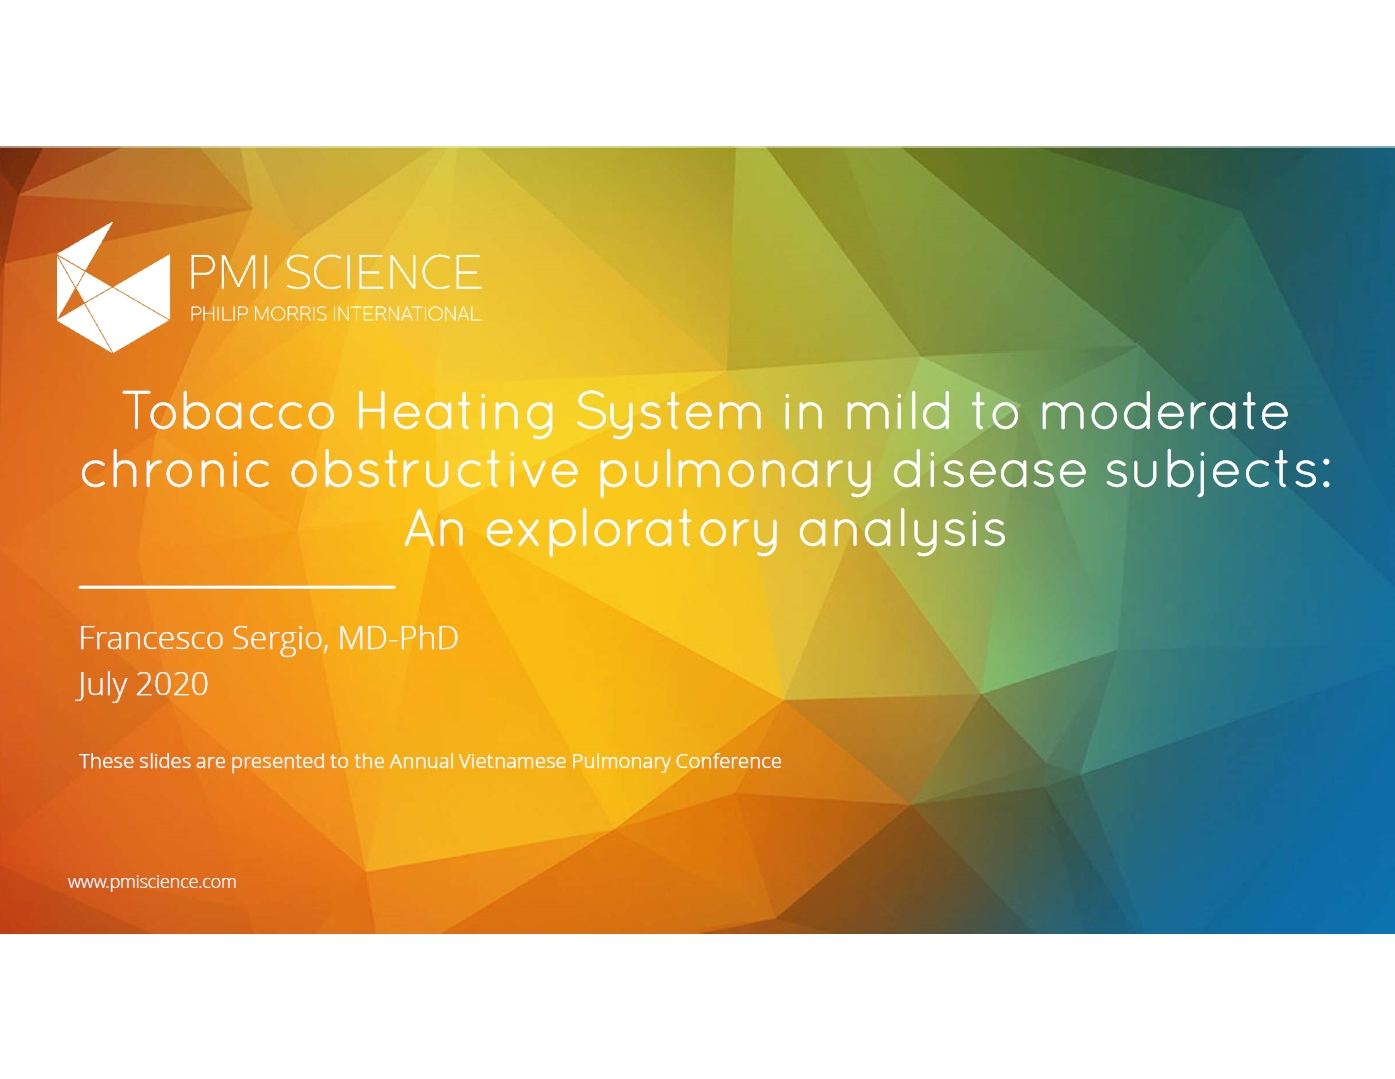 Tobacco Heating System in mild to moderate chronic obstructive pulmonary disease subjects